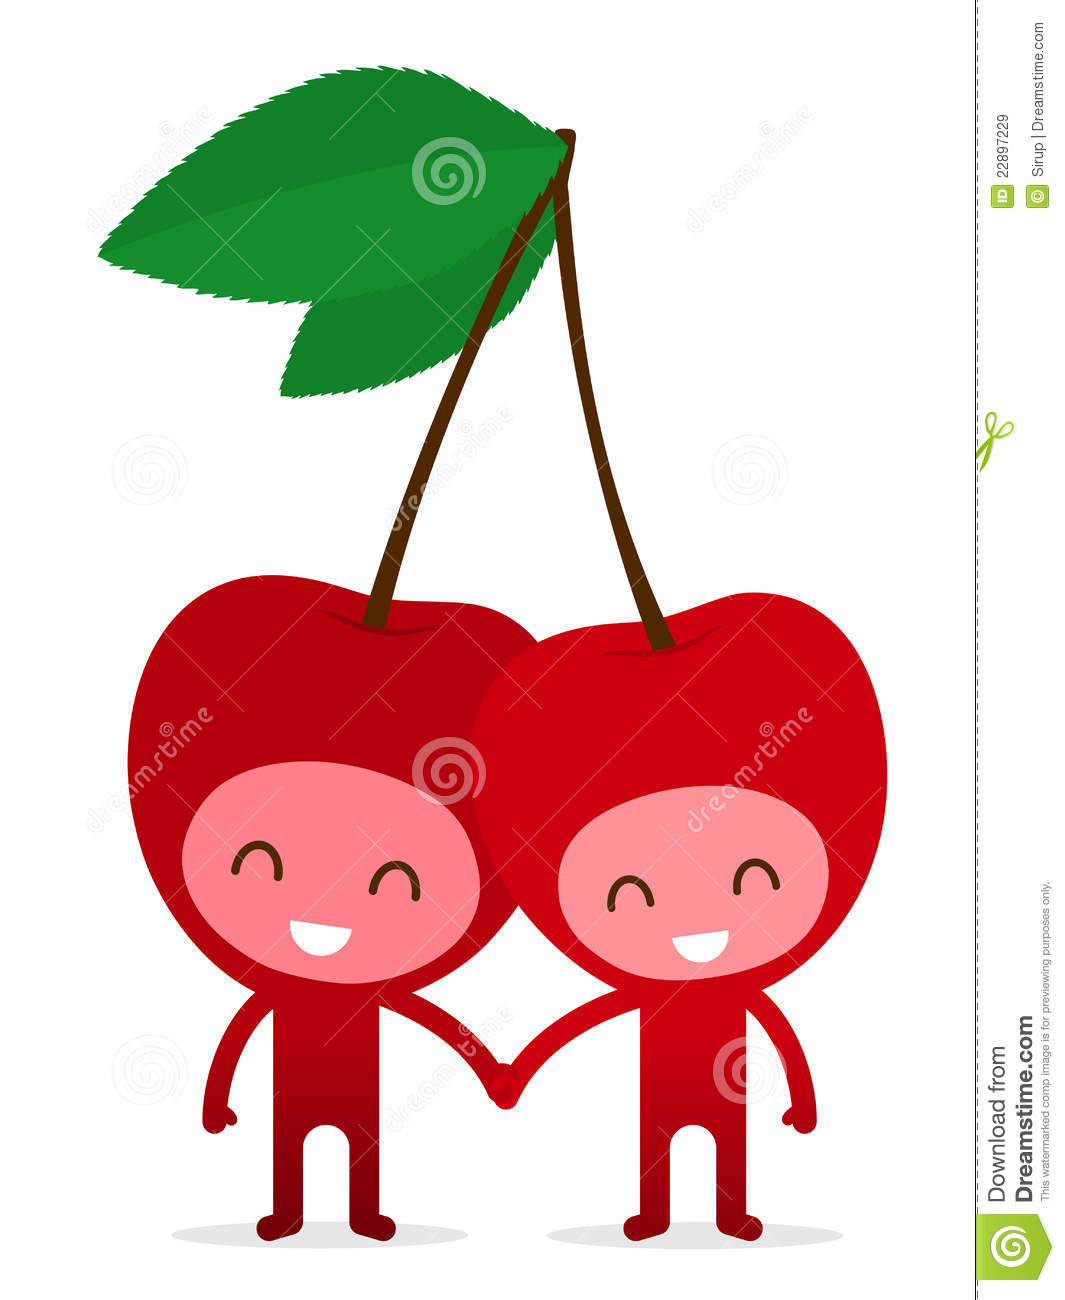 Cartoon Characters Holding Hands : Cherry couple holding hands royalty free stock images